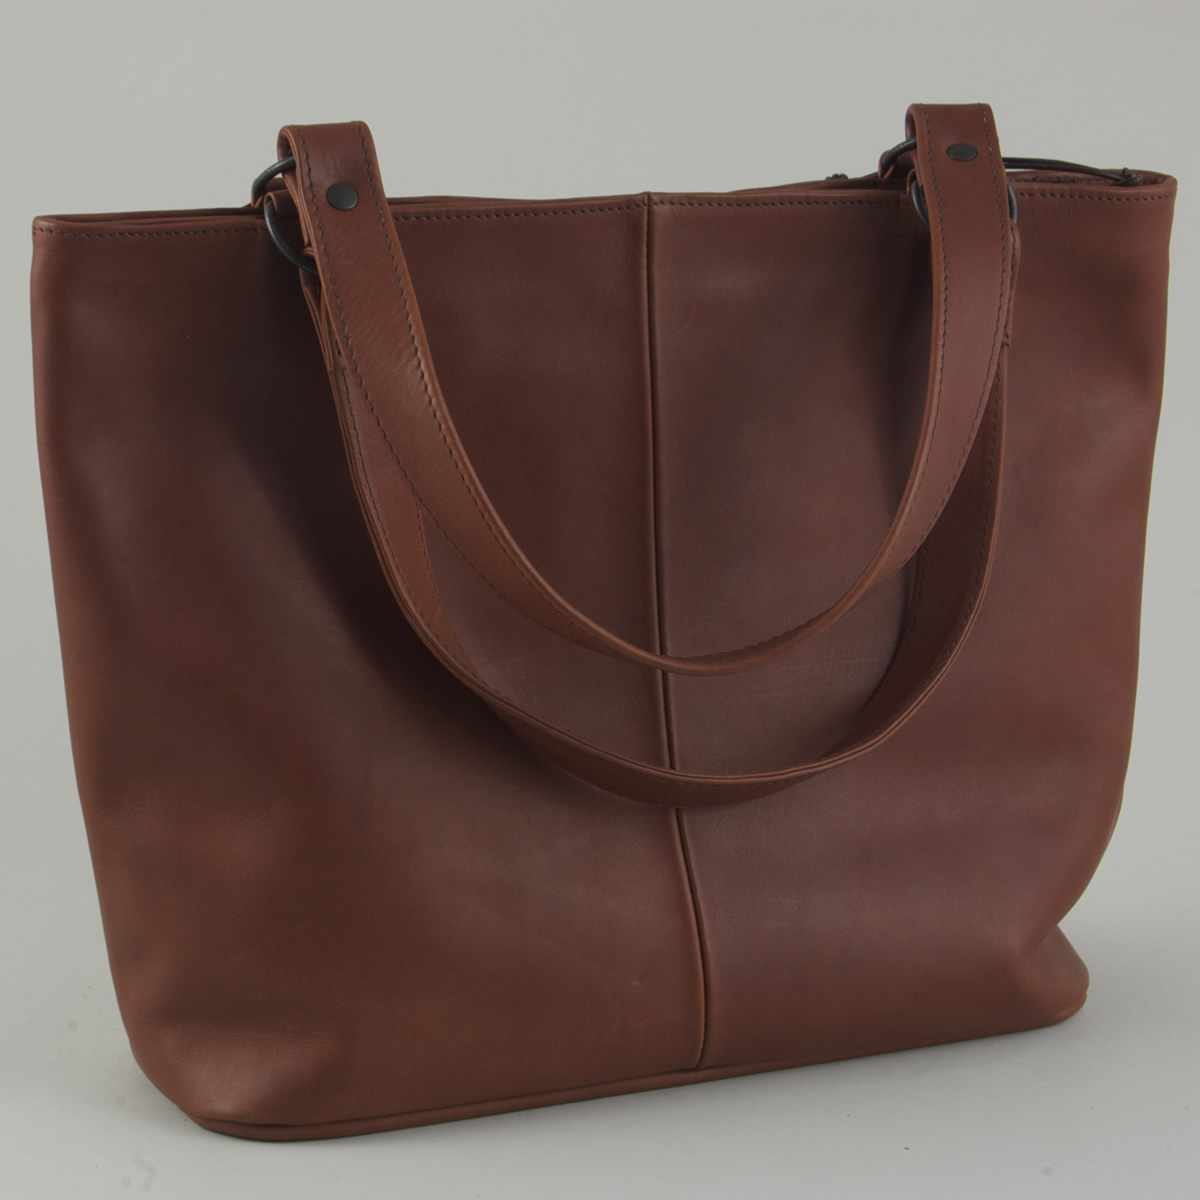 The Large Shopper - Short Handles